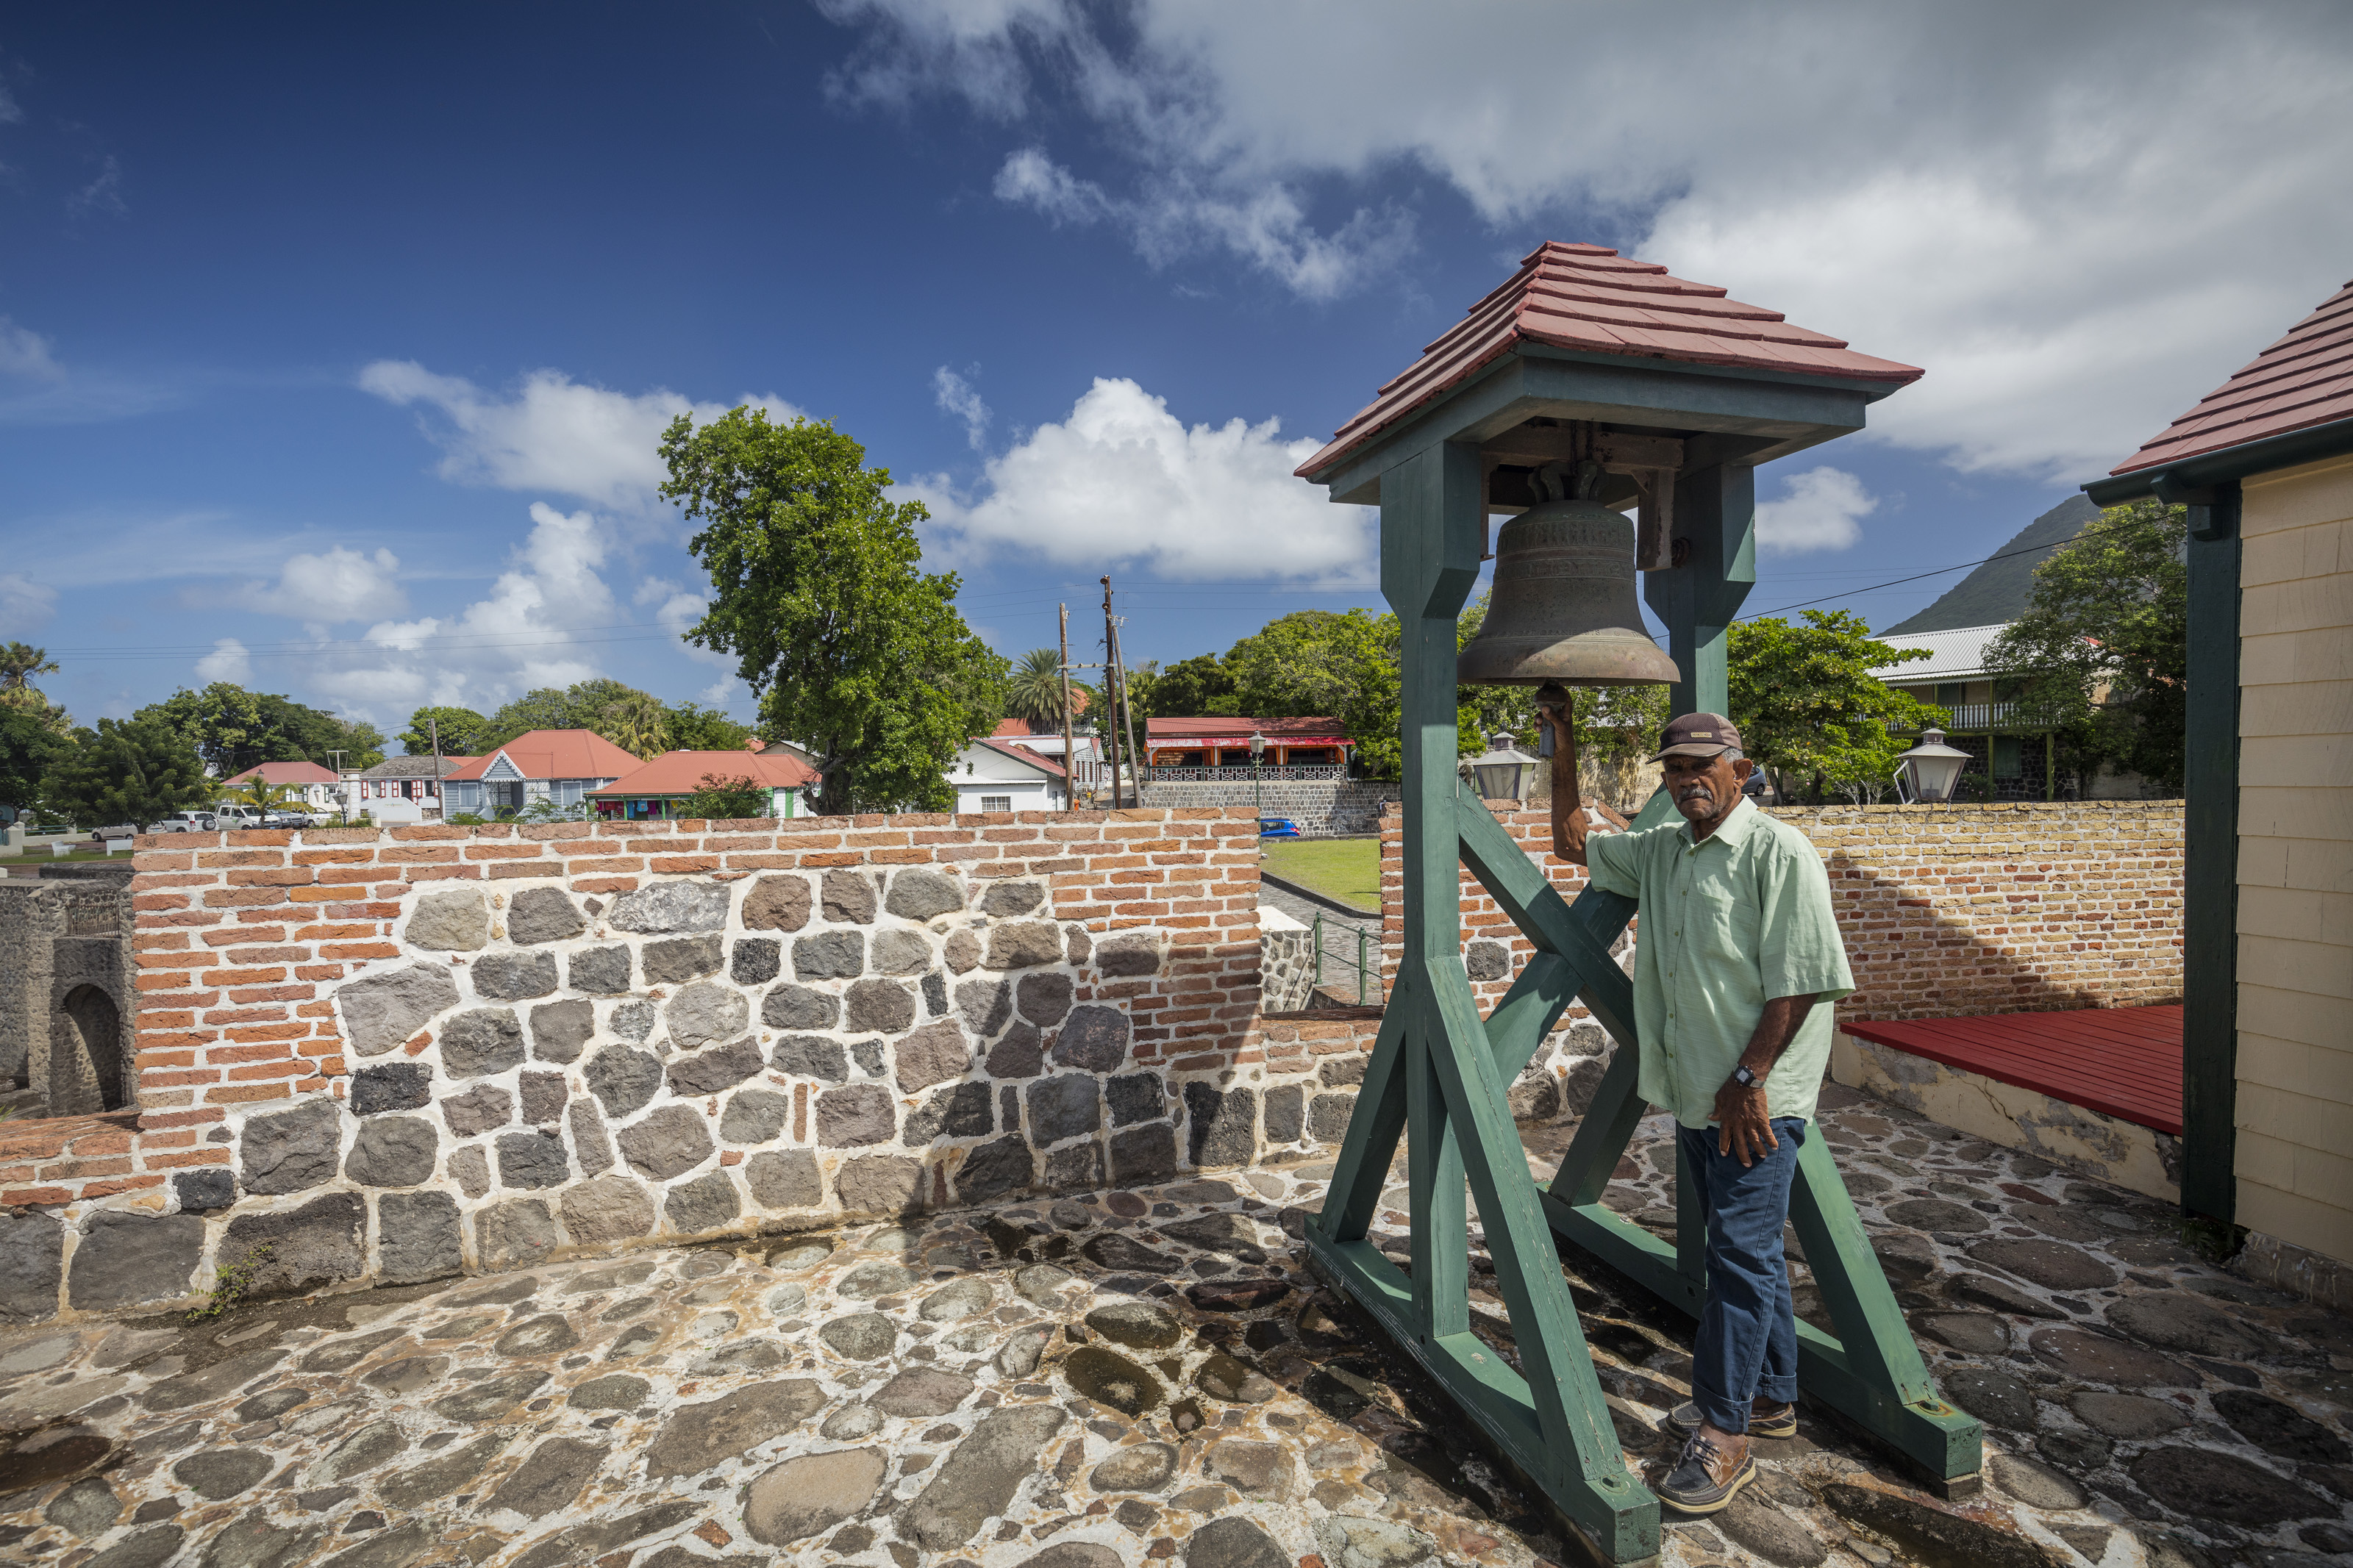 Statia_Fort_Oranje_Cees_Timmers_2016_4361 (1)